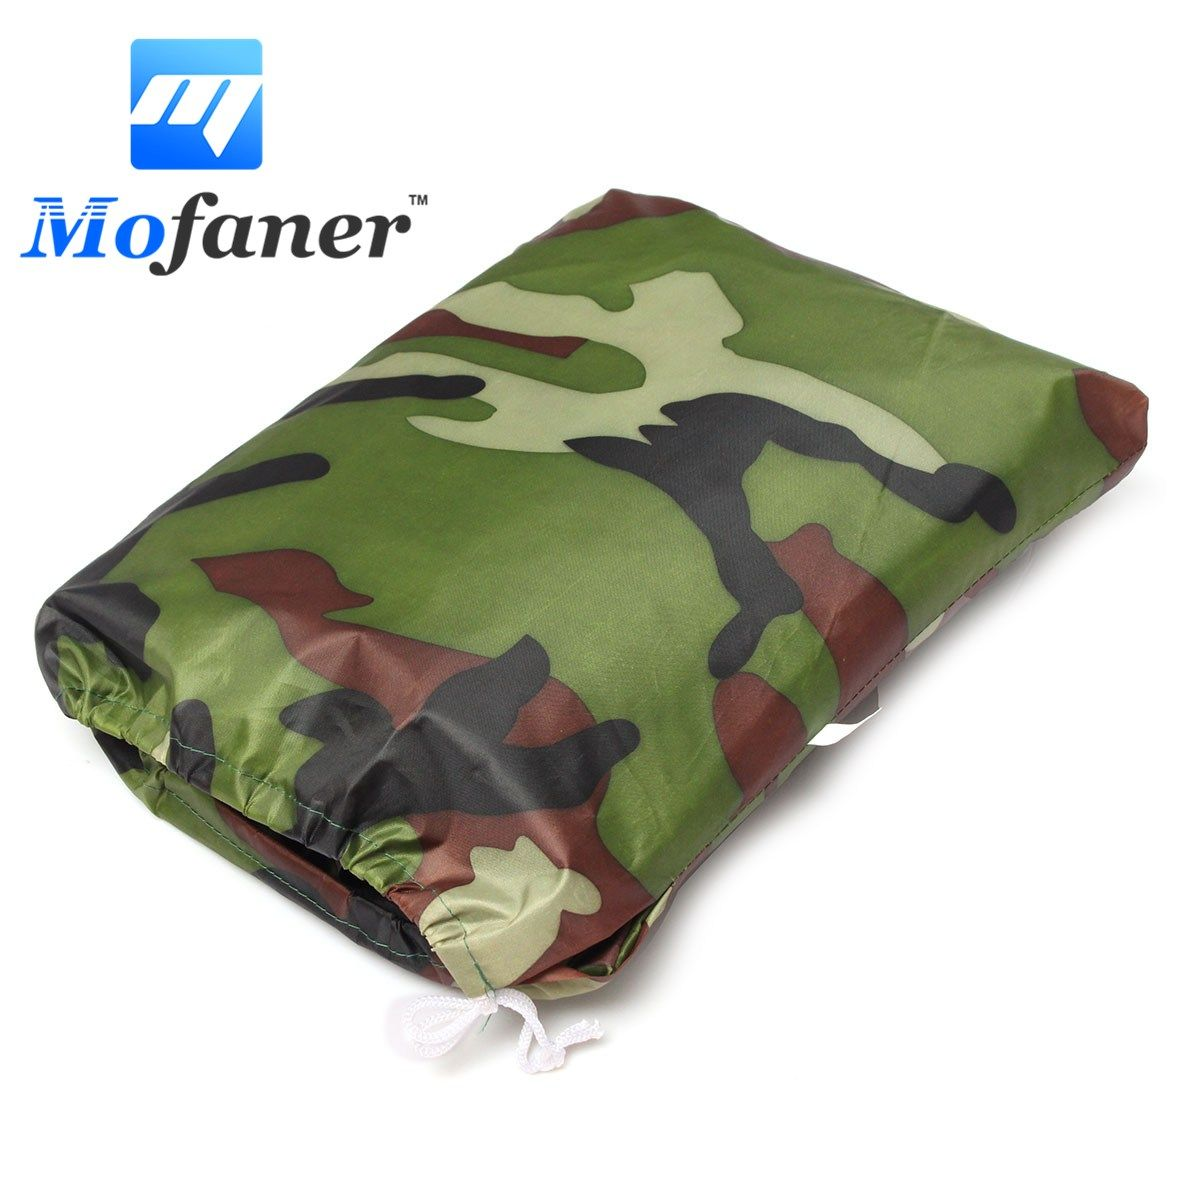 Mofaner L 180T Camouflage Motorcycle Waterproof Cover Outdoor Protector Rain Dust Bike Motor Scooter ATV Covers